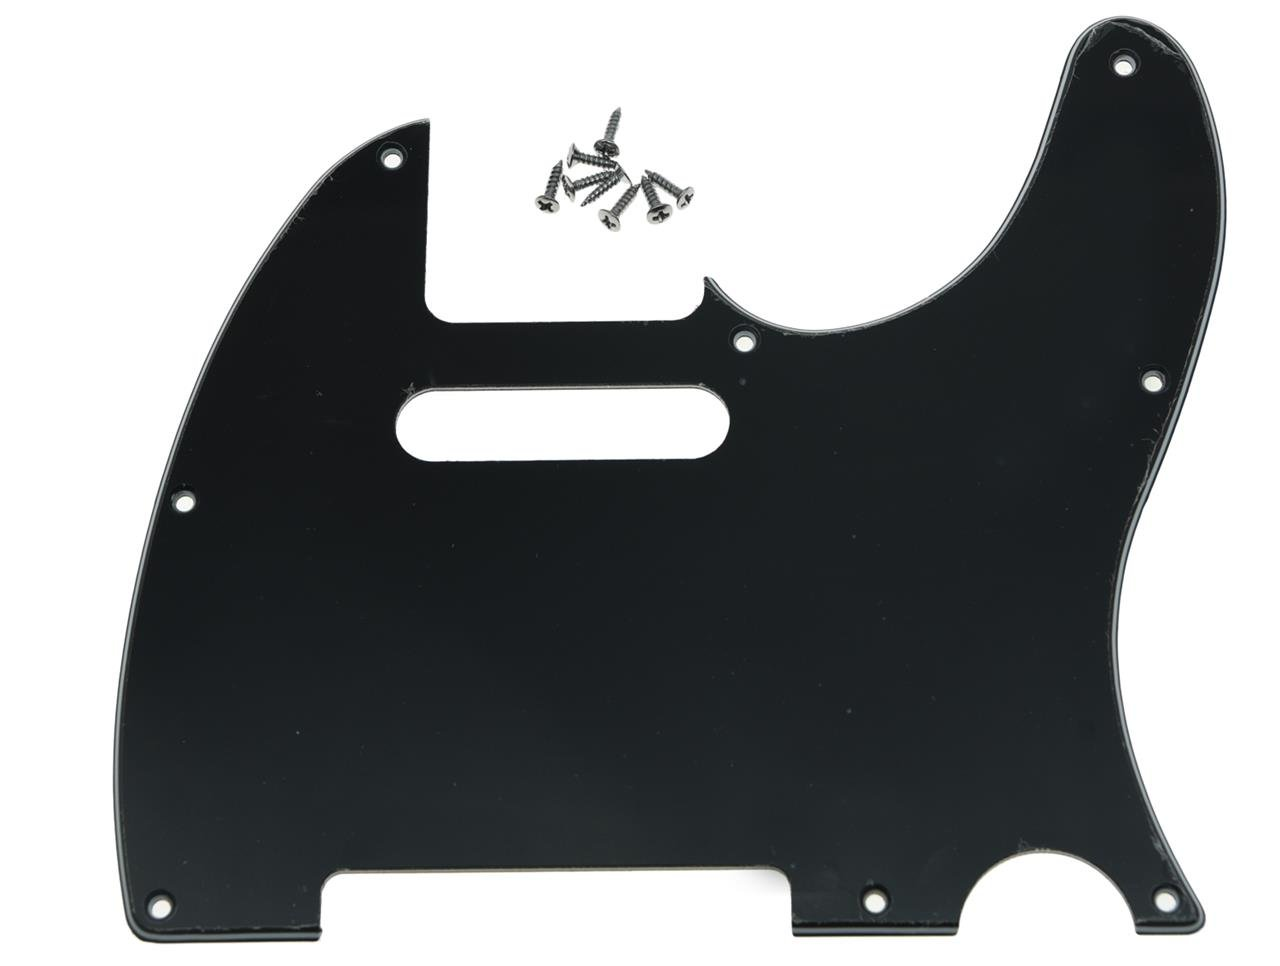 KAISH 8 Hole Tele Guitar Pickguard Scratch Plate fits USA/Mexican Fender Telecaster Black 3 Ply